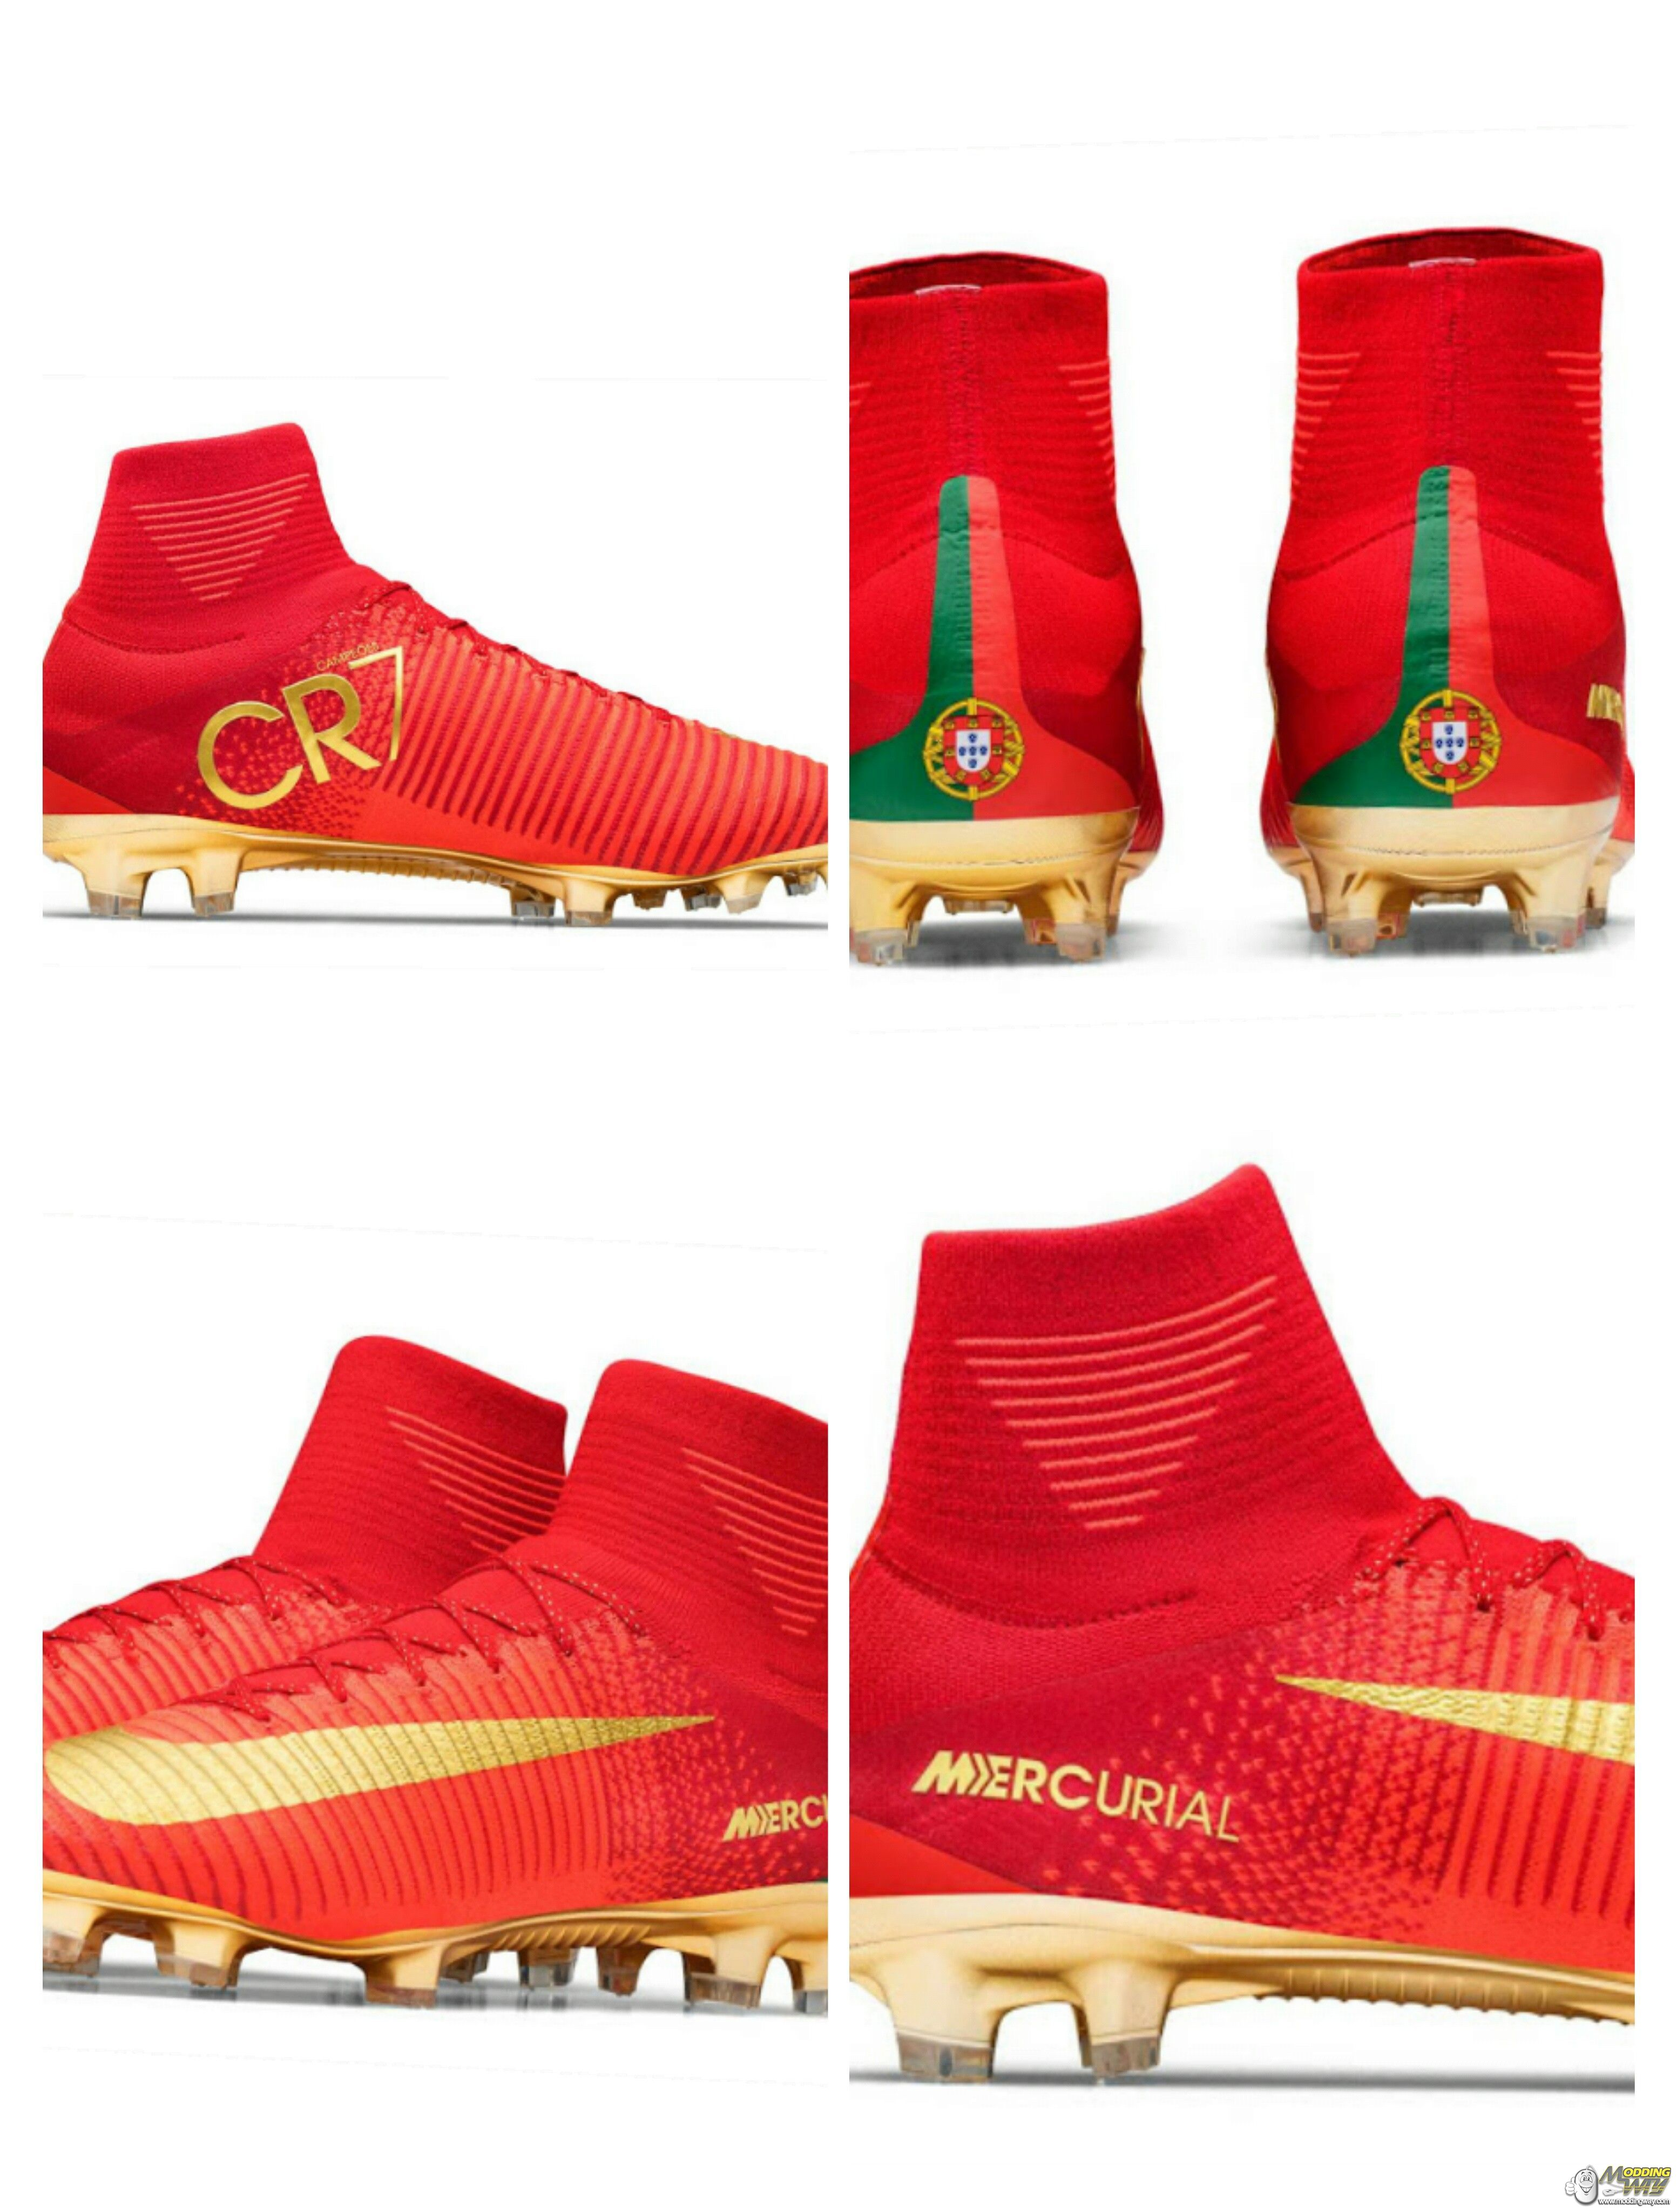 8154fcd0e31 ... Nike Mercurial Superfly V CR7 Campeoes - FIFA 14 at ModdingWay ...